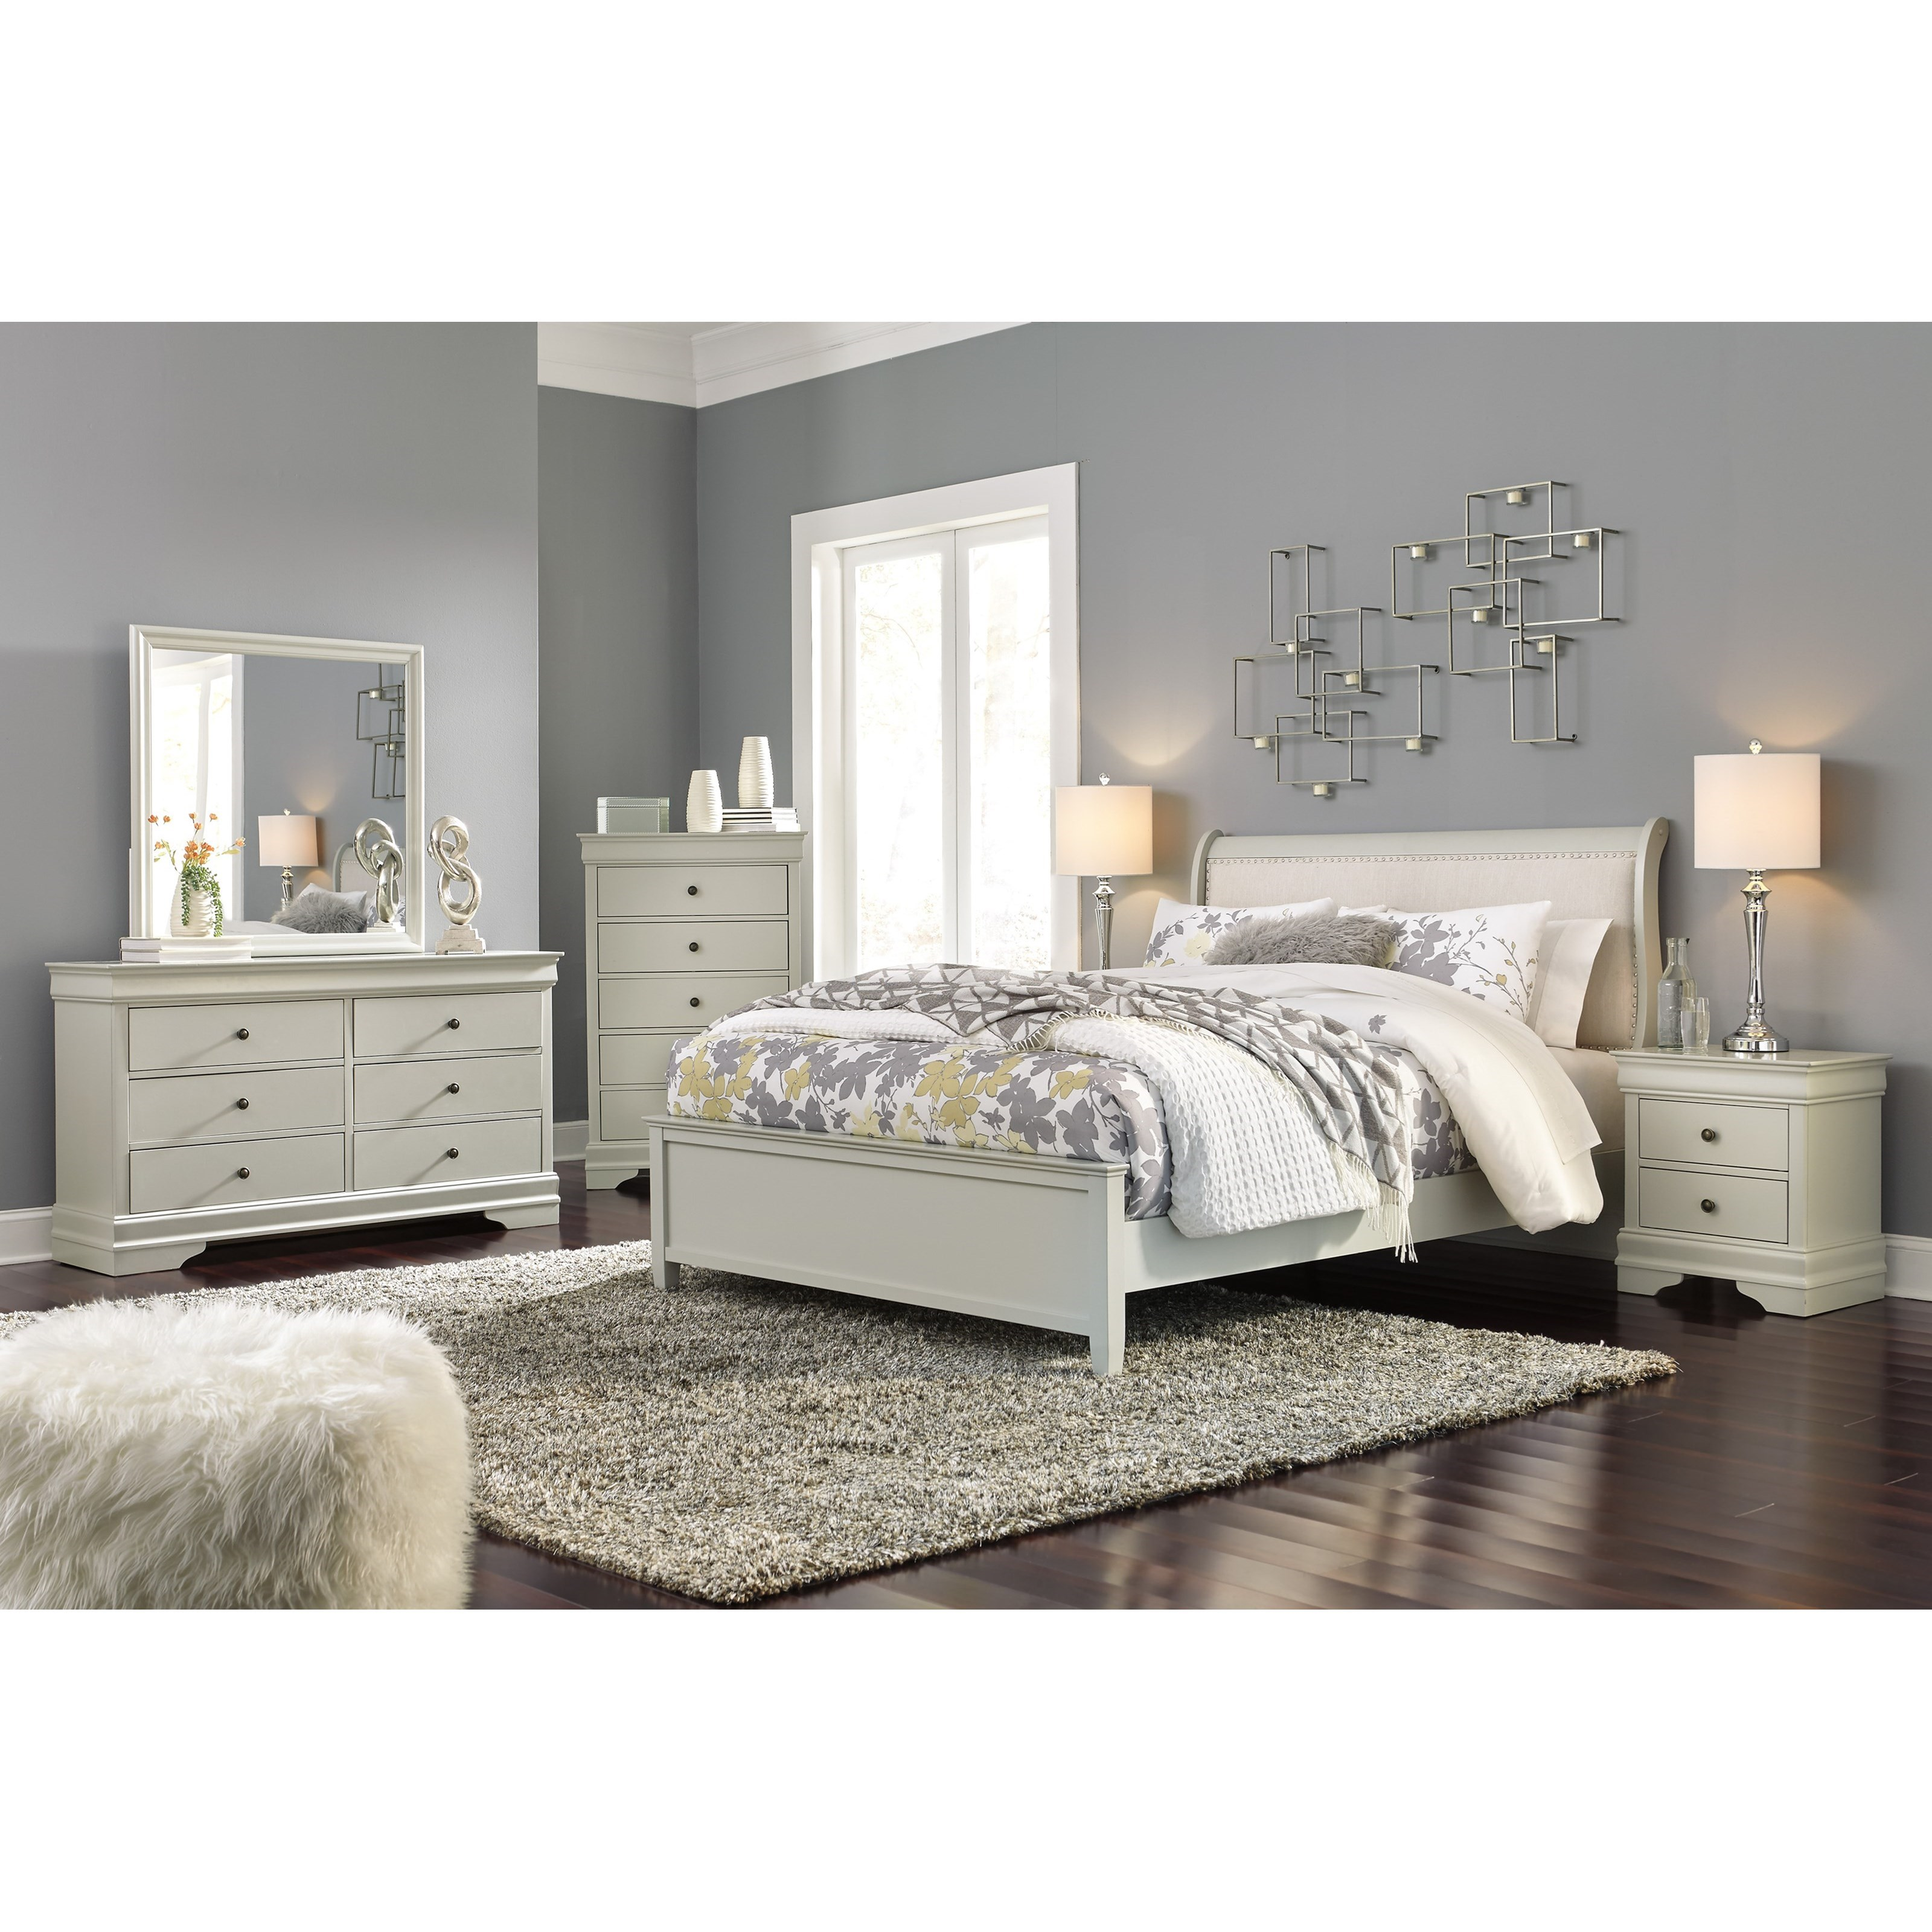 King Bed Room Group